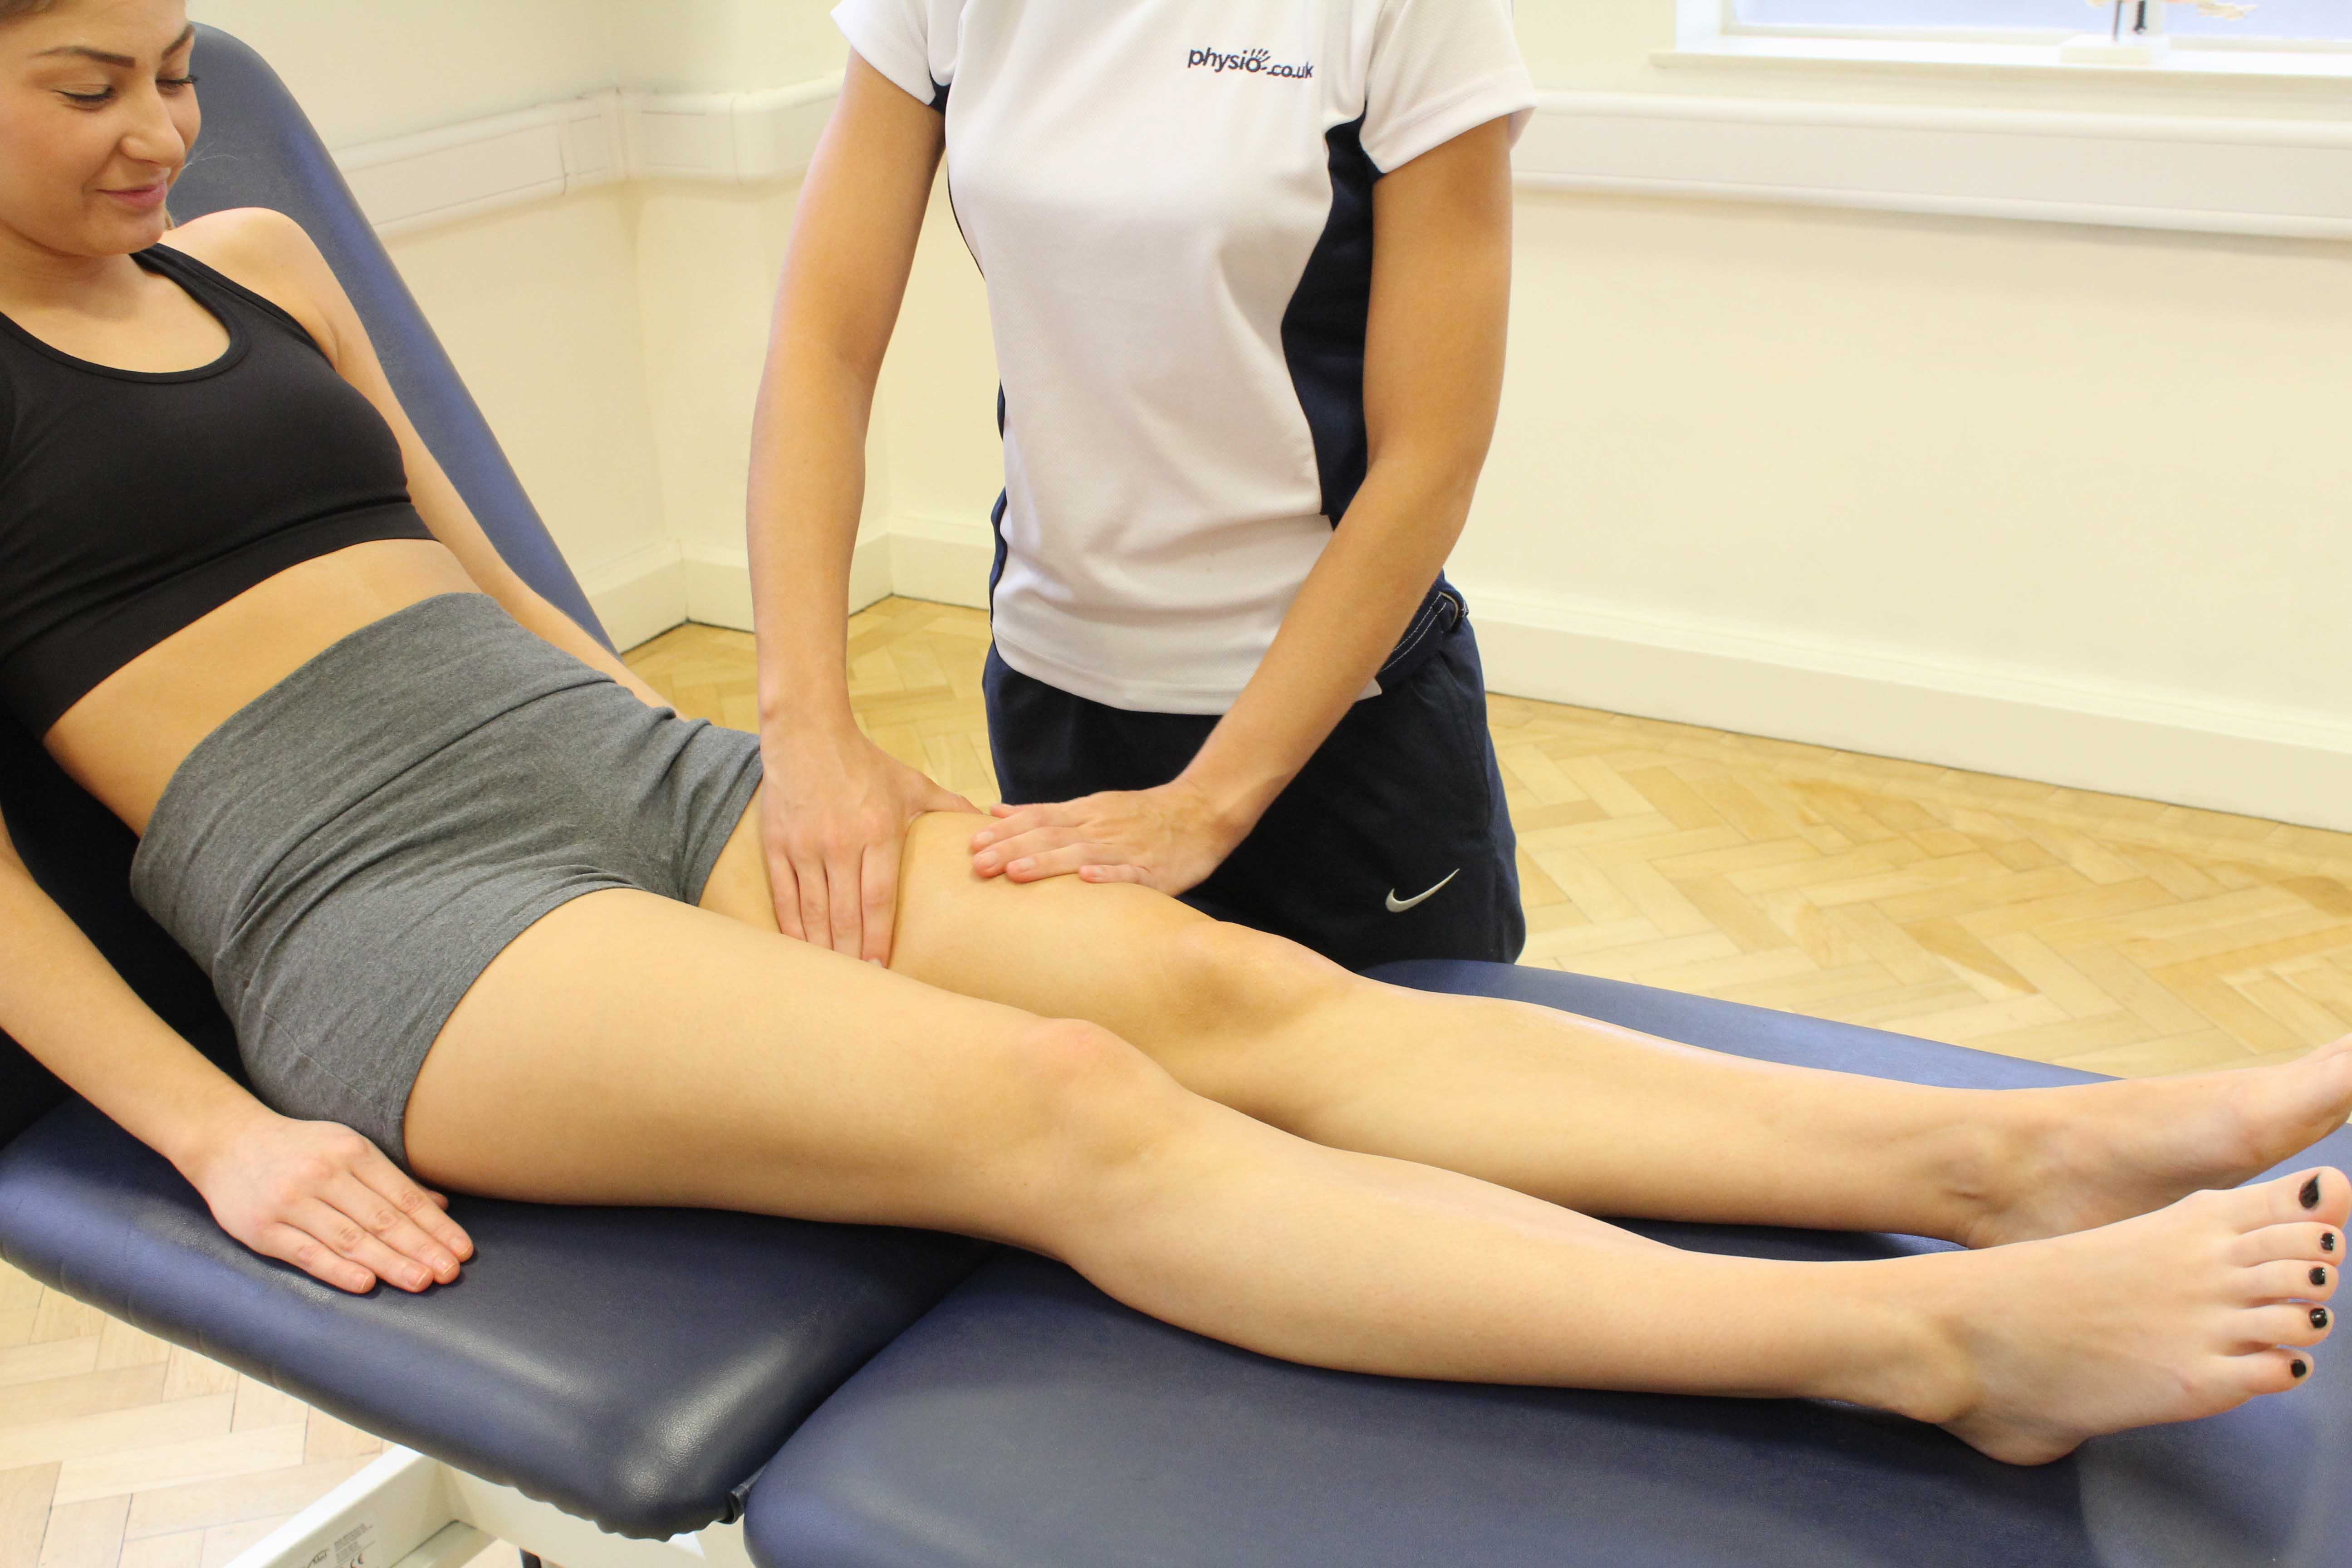 Soft tissue massage of the muscles and connective tissues around the groin by an experienced therapist